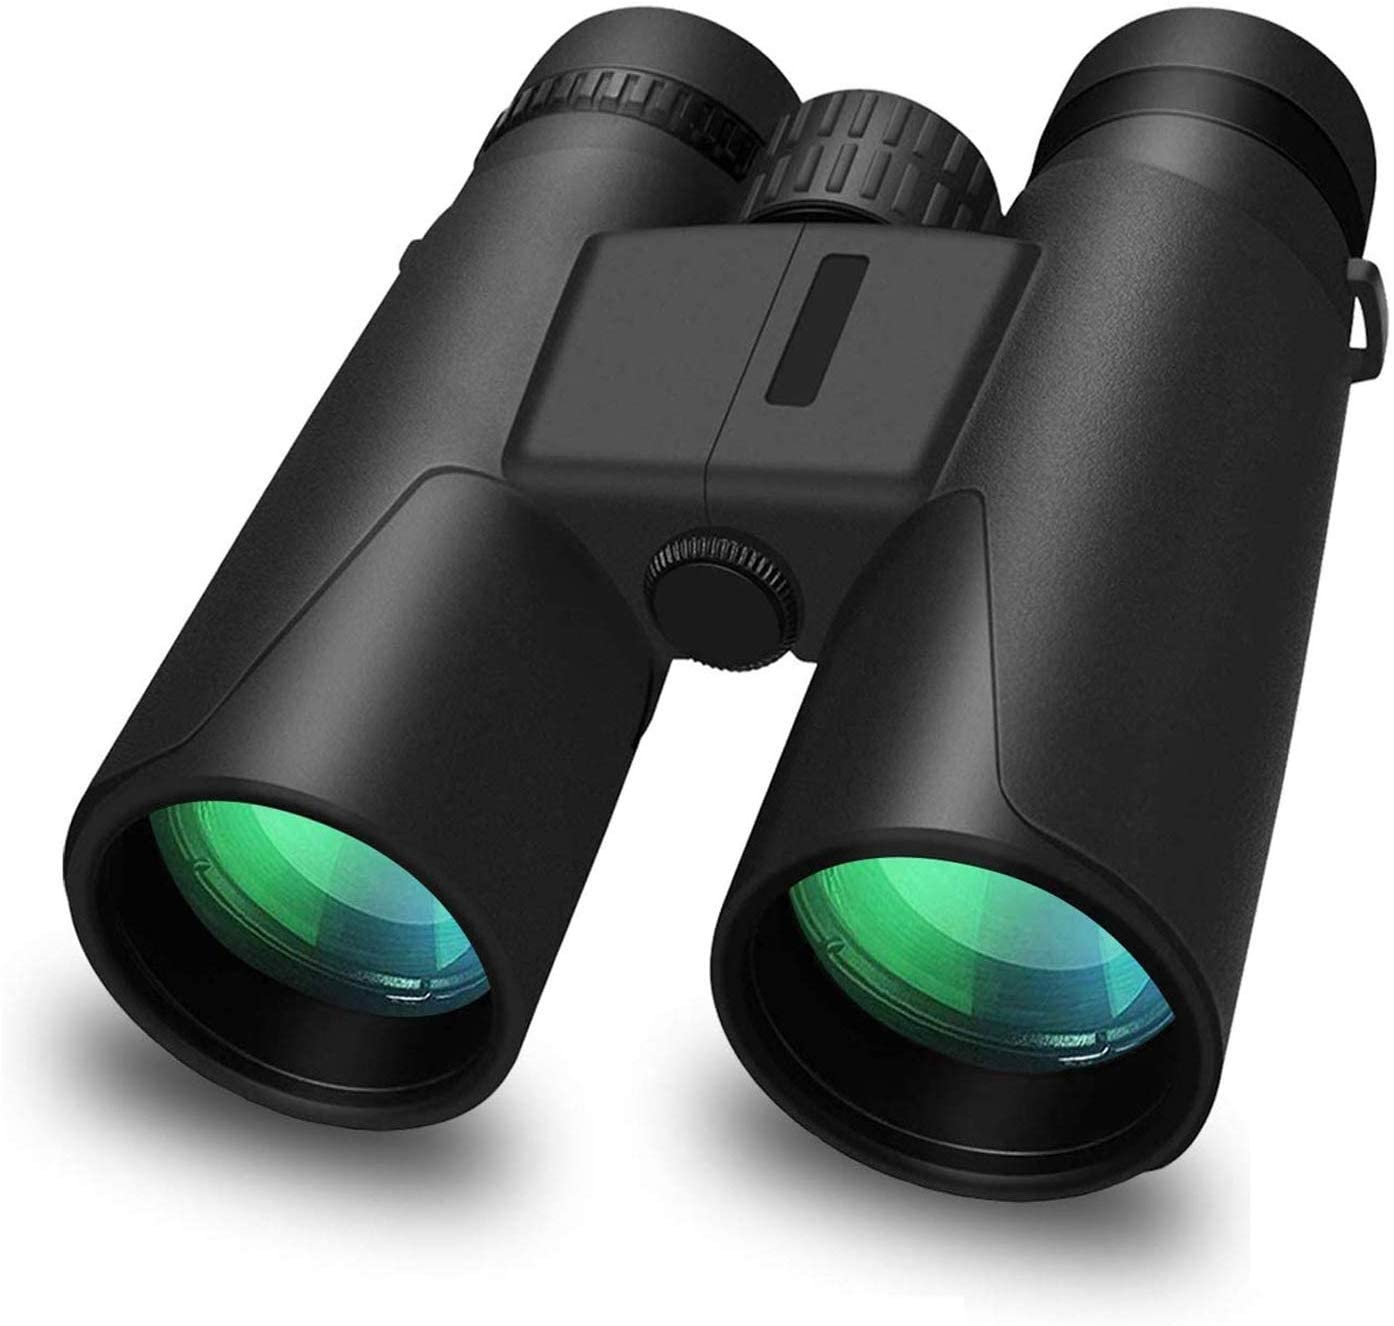 Top 10 Best Compact Binoculars 2021 Reviews 8